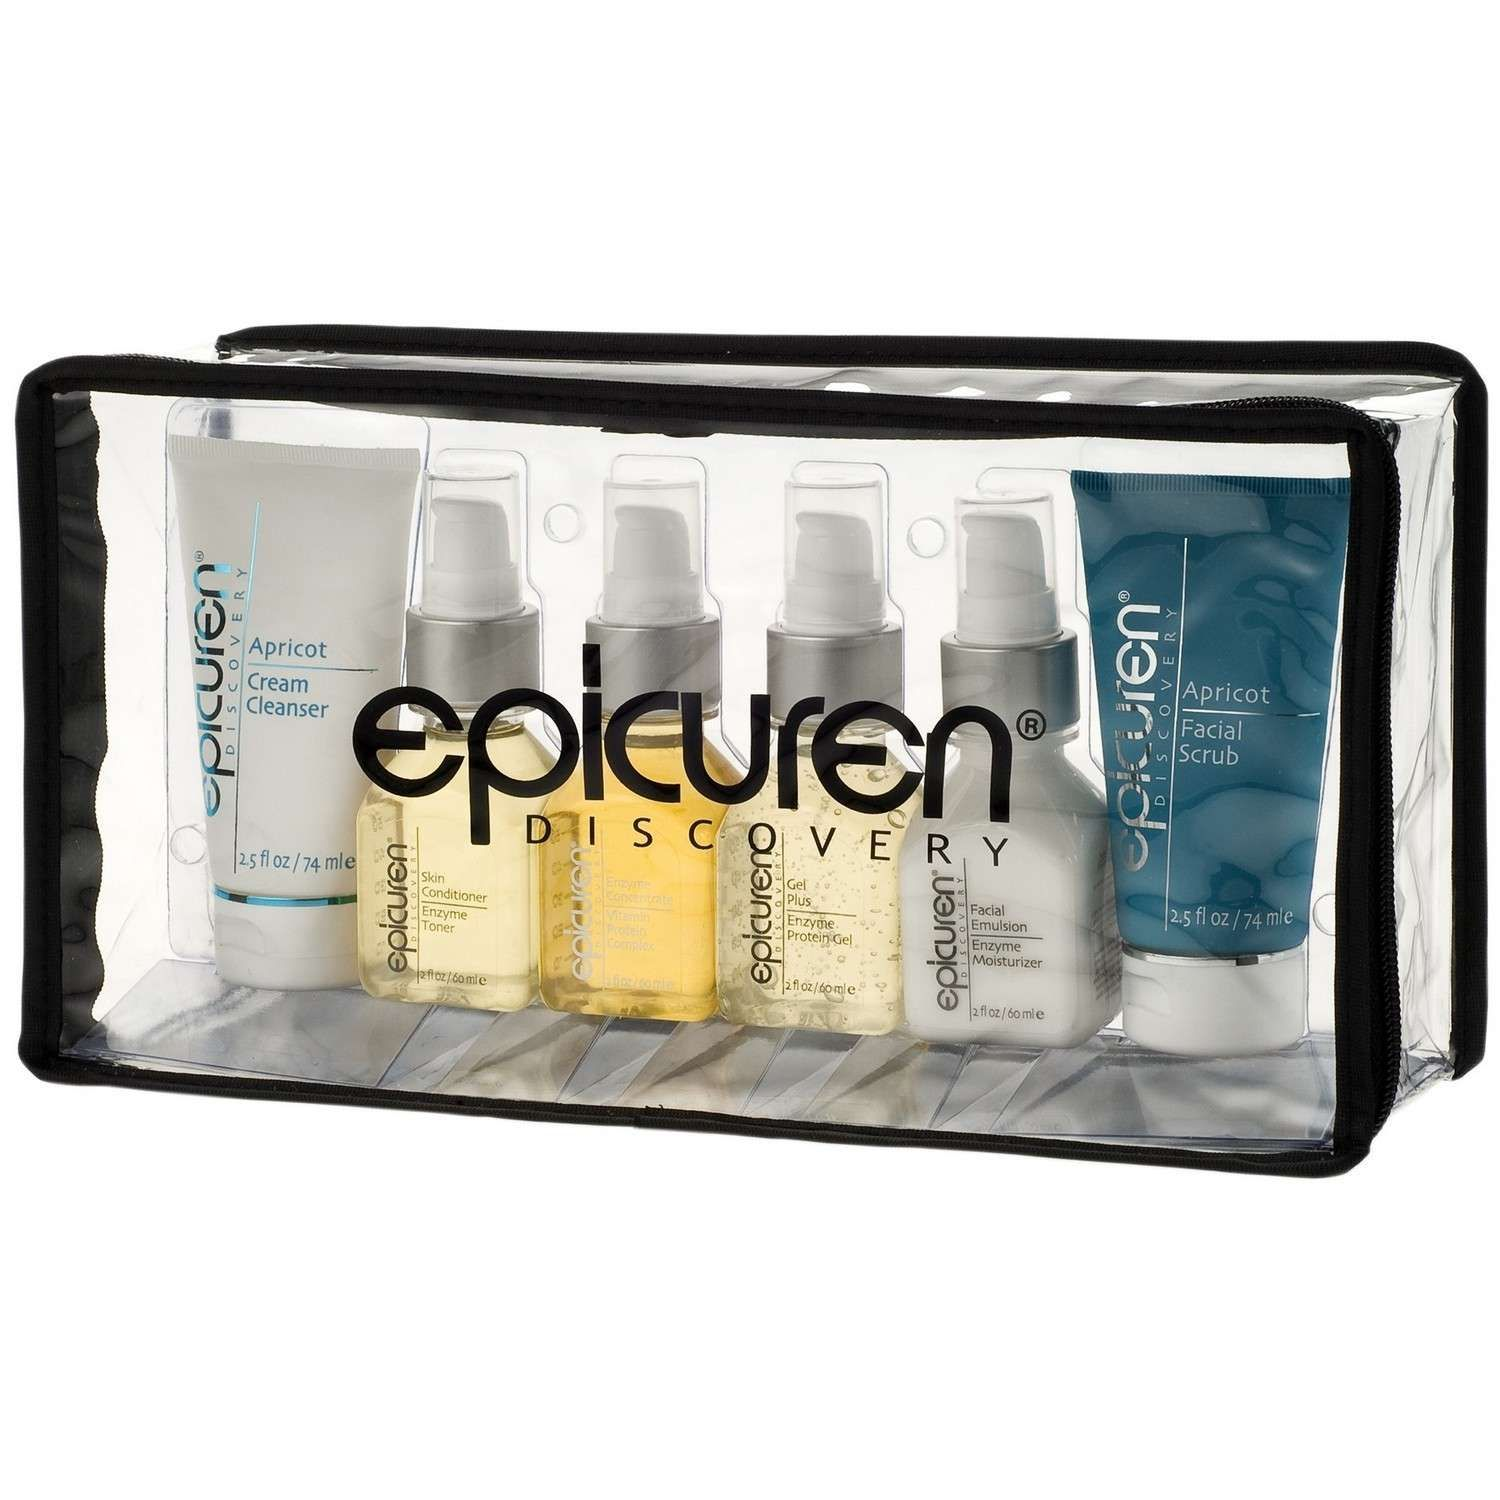 epicuren Discovery Six-Step System (Mid-Size) (set)